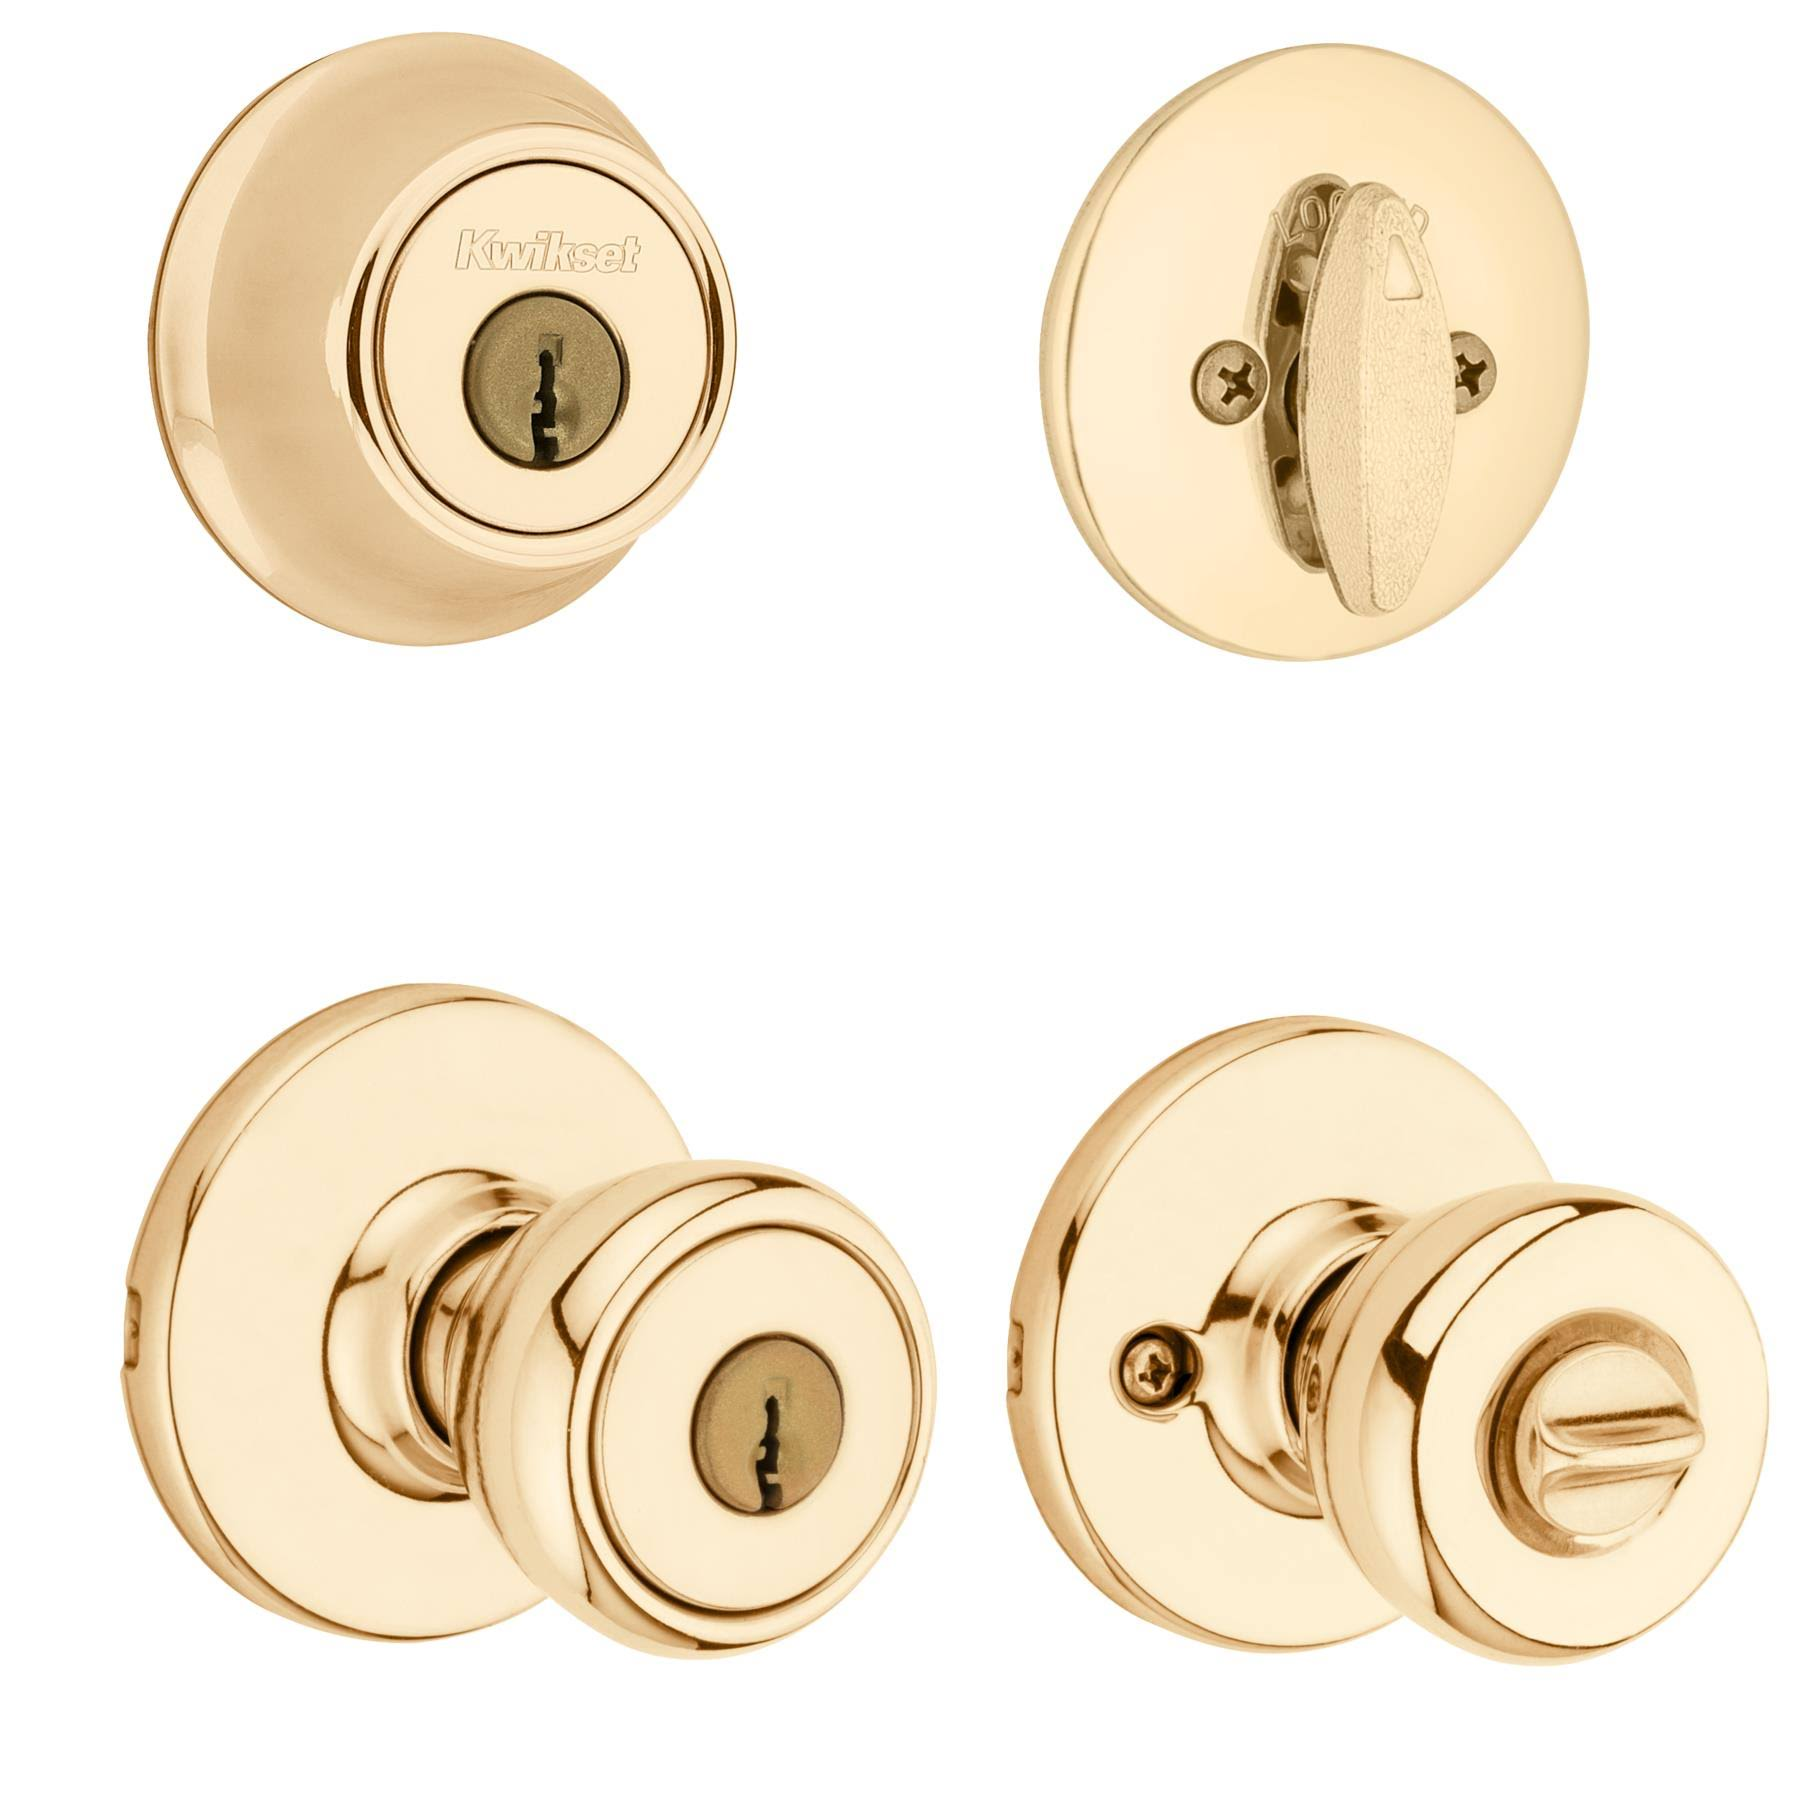 Kwikset Tylo Entry Knob and Single Cylinder Deadbolt Combo - Polished Brass